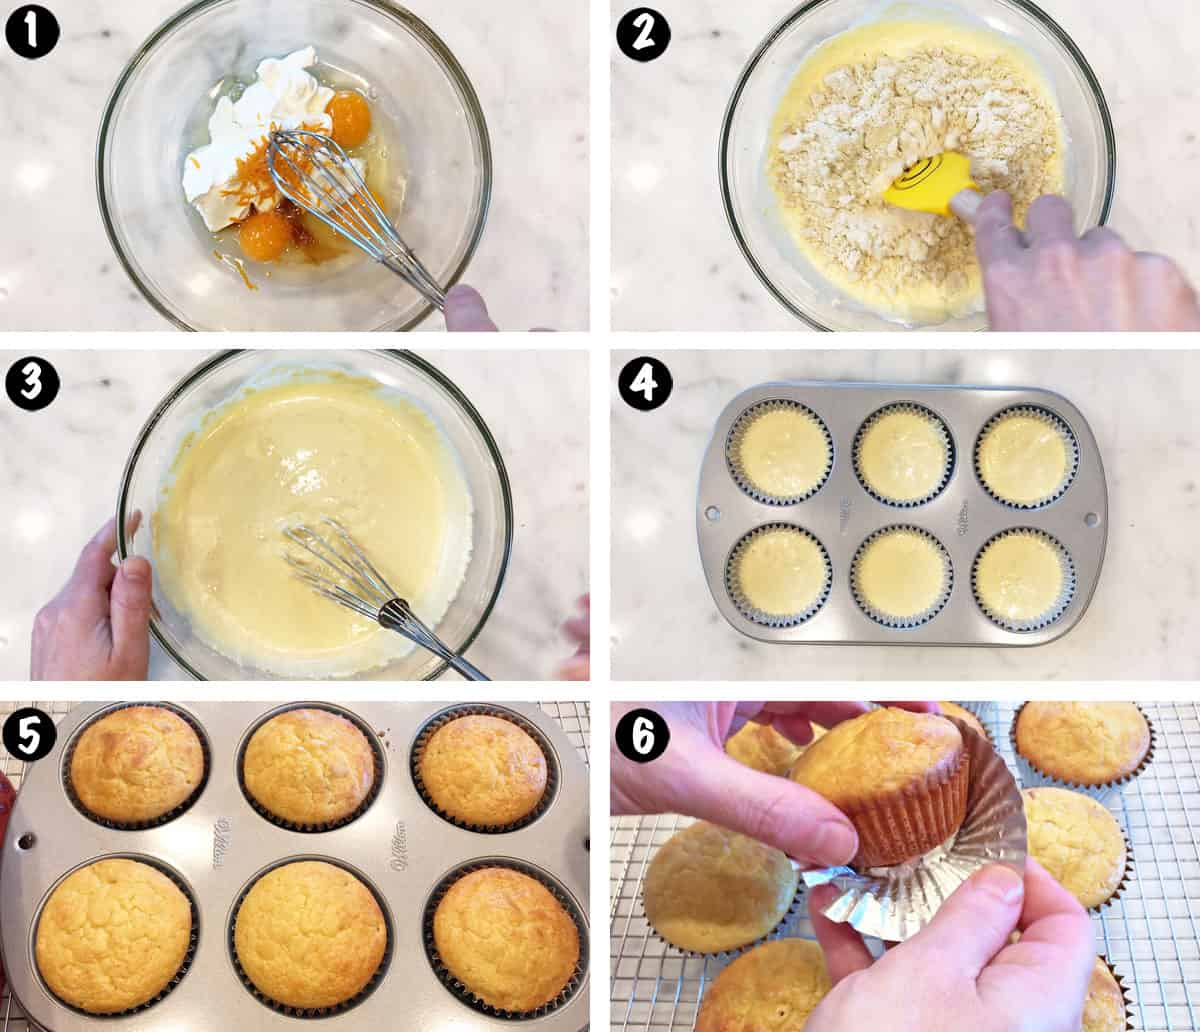 A photo collage showing the steps for making keto muffins.